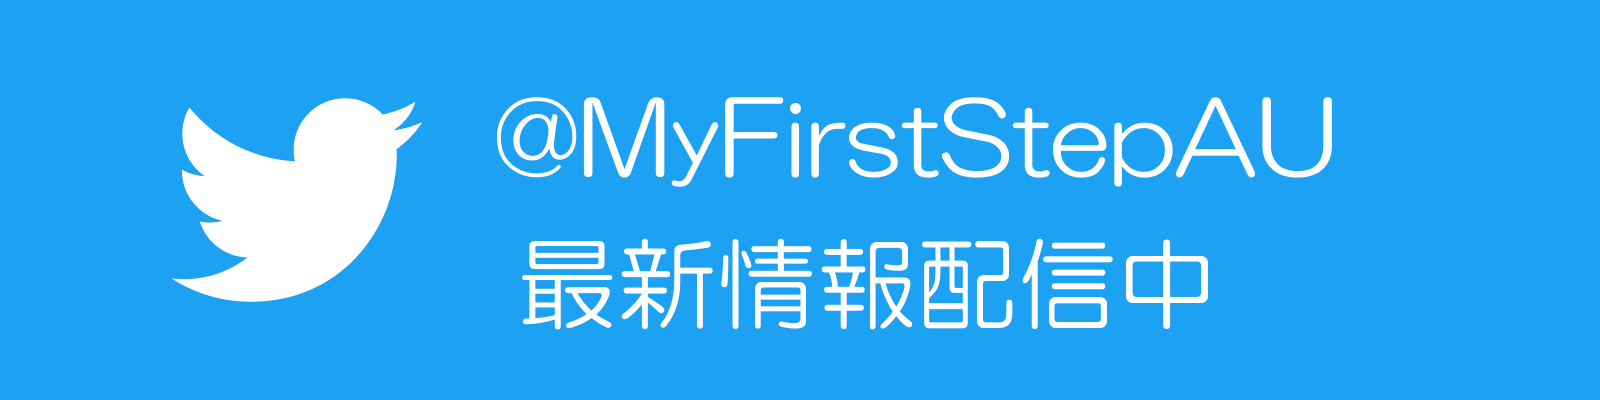 My First Step Twitter公式アカウント